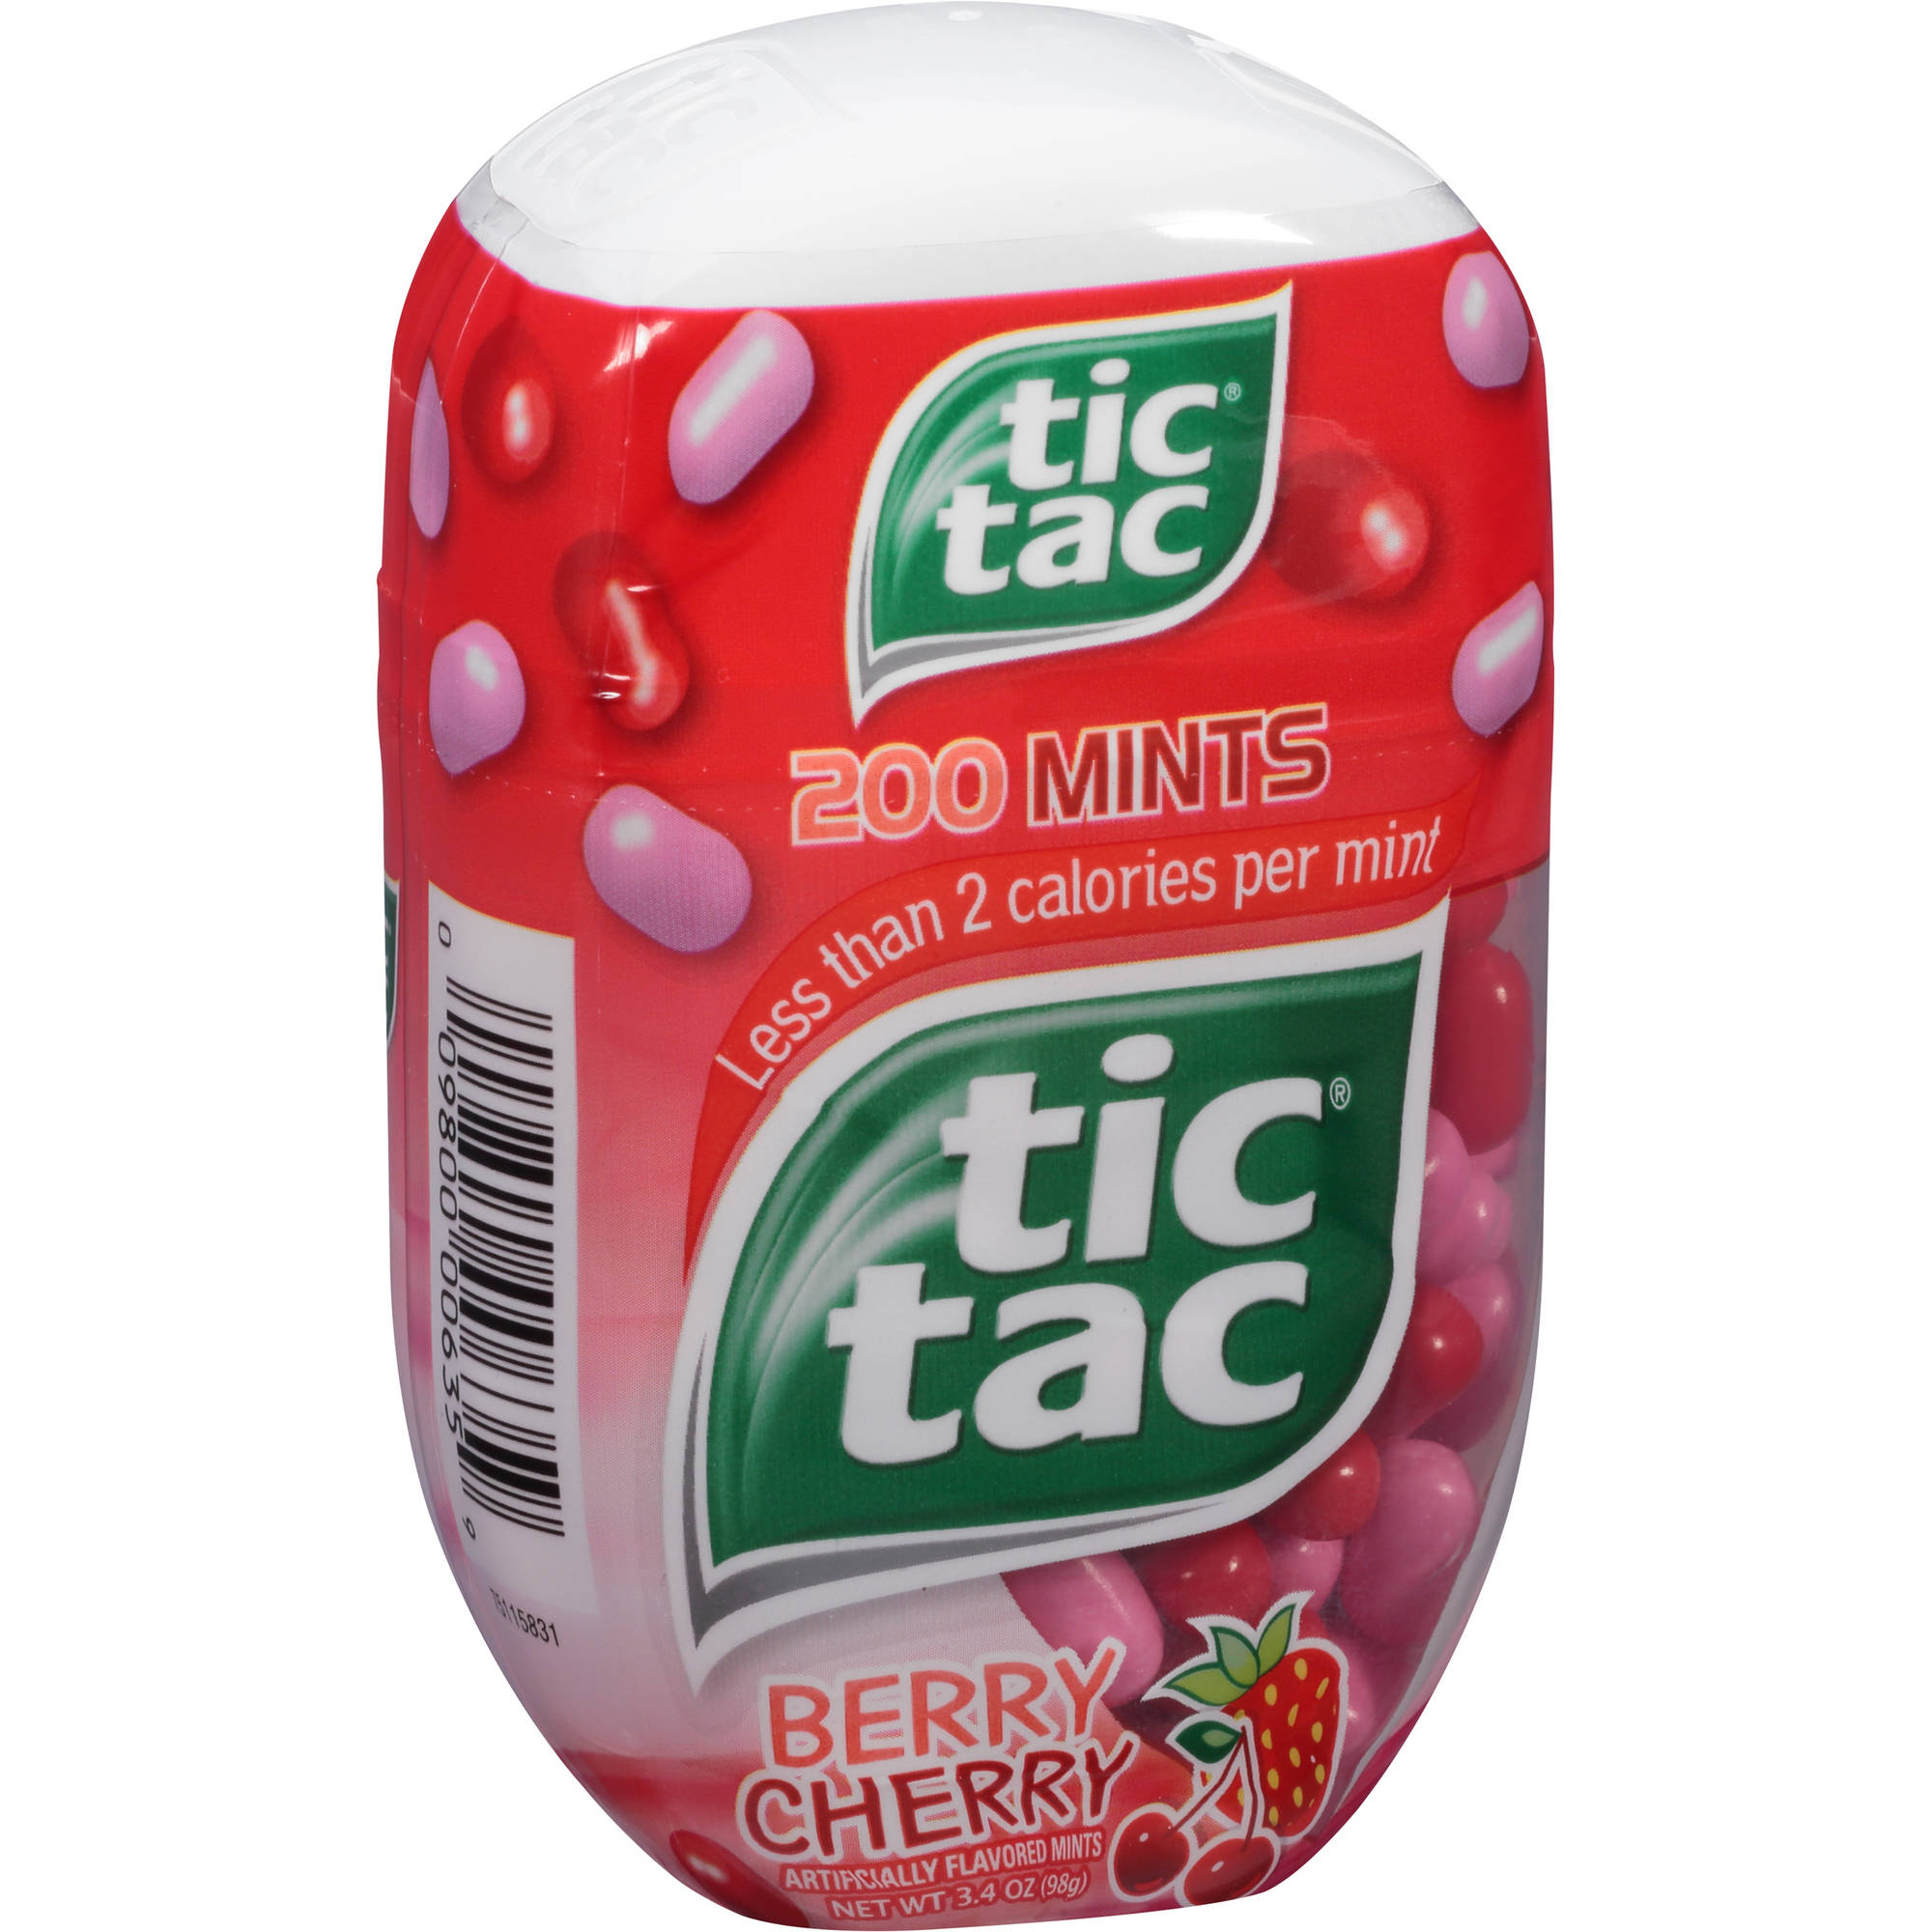 Tic Tac Berry Cherry Mints, 200 count, 3.4 oz